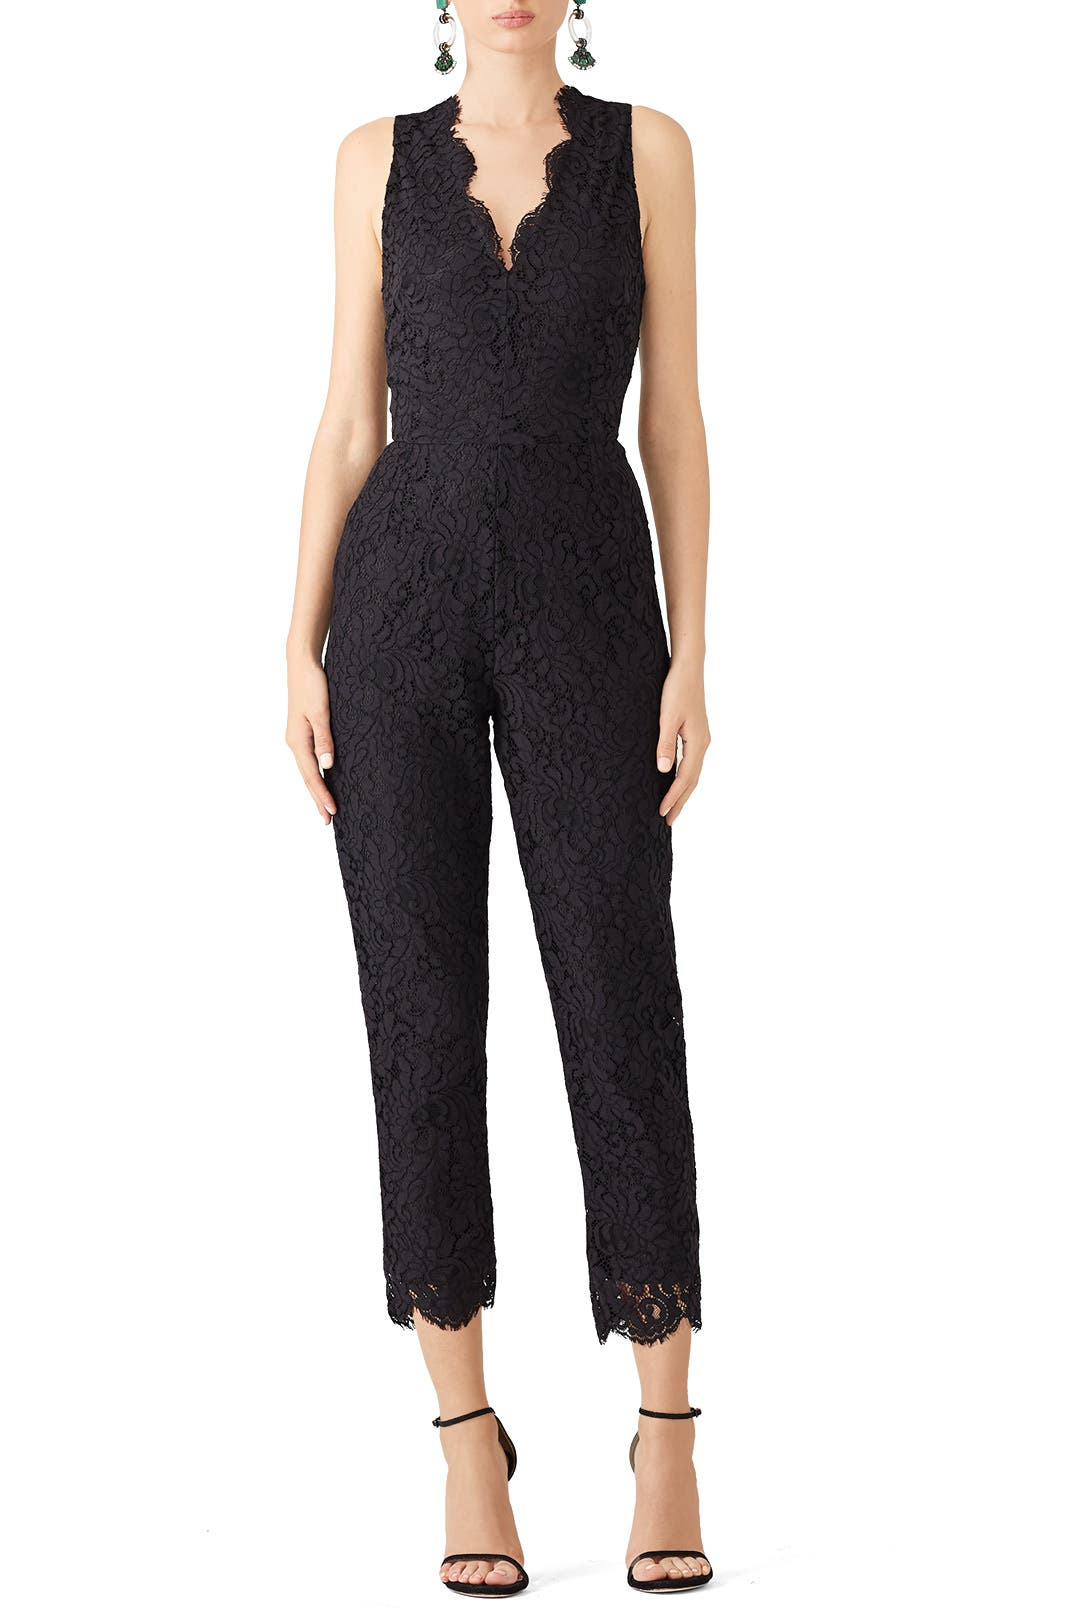 f8c48e3608df Evita Jumpsuit by cupcakes and cashmere for  30 -  40